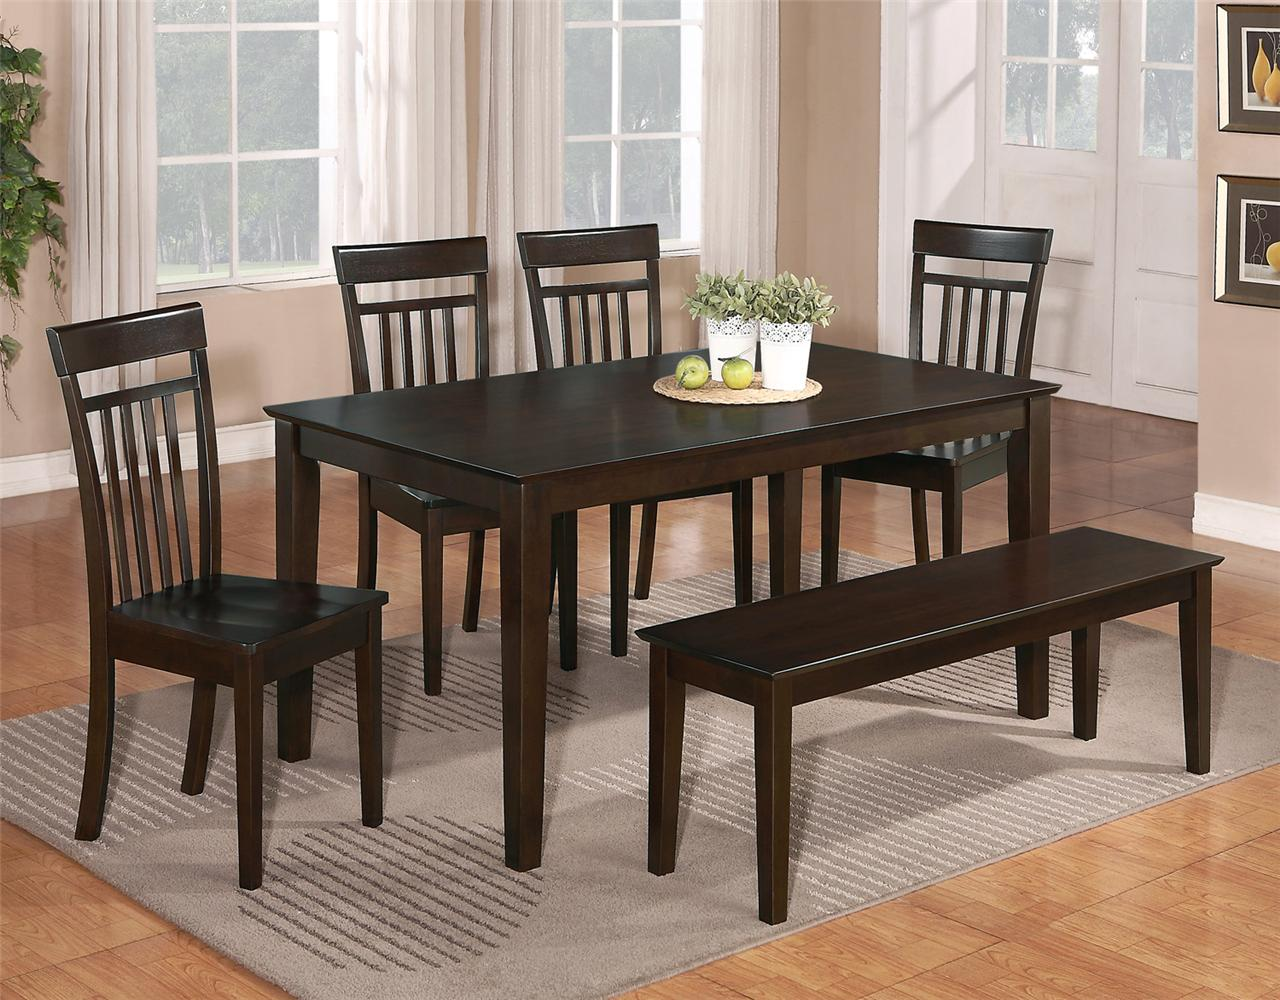 6 pc dinette kitchen dining room set table w 4 wood chair for Dining room table with bench